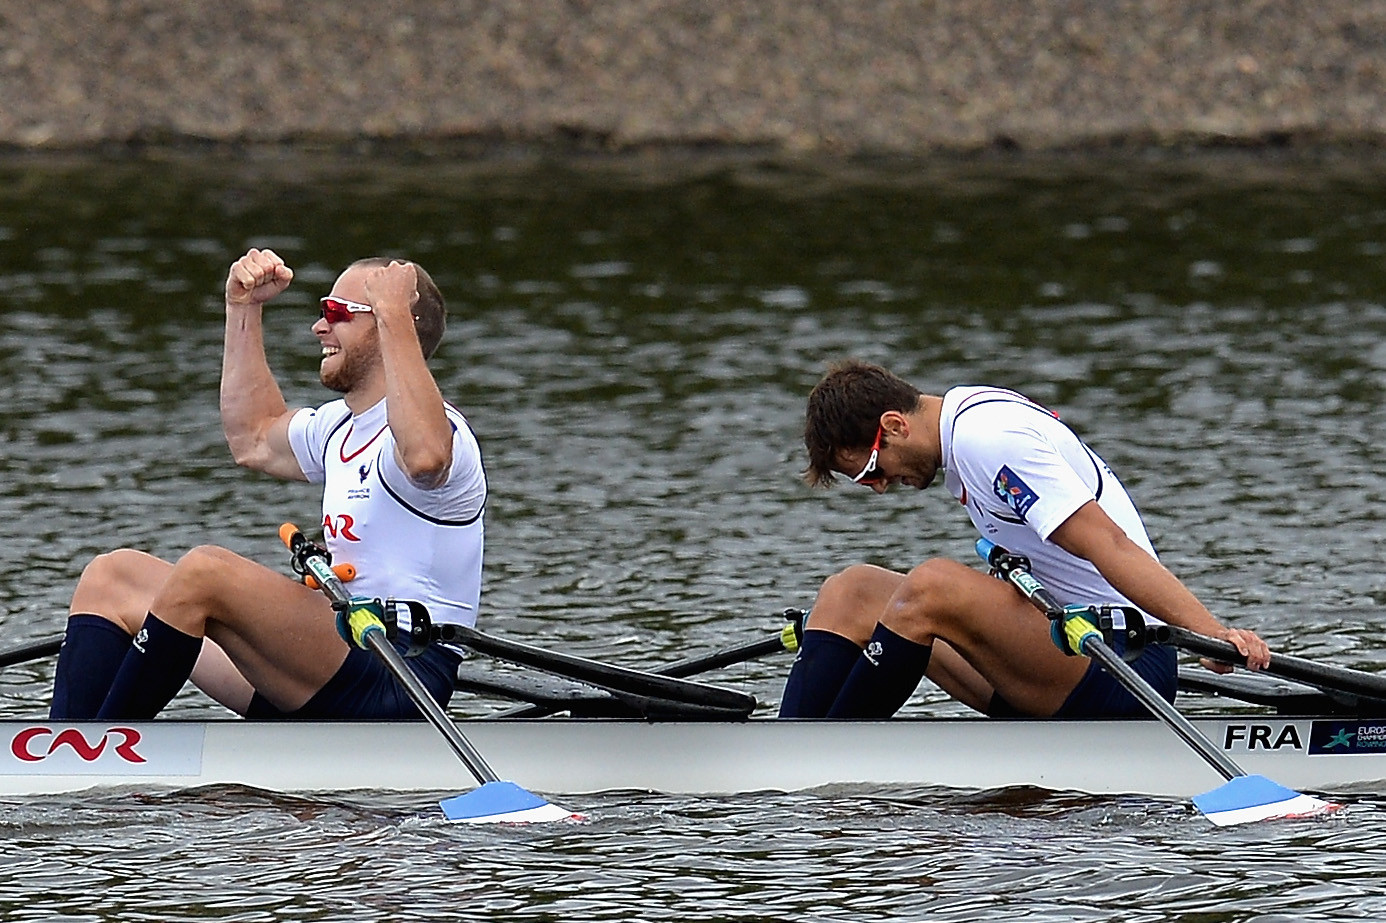 French double sculls crew earn dramatic victory as rowing finals conclude at European Championships